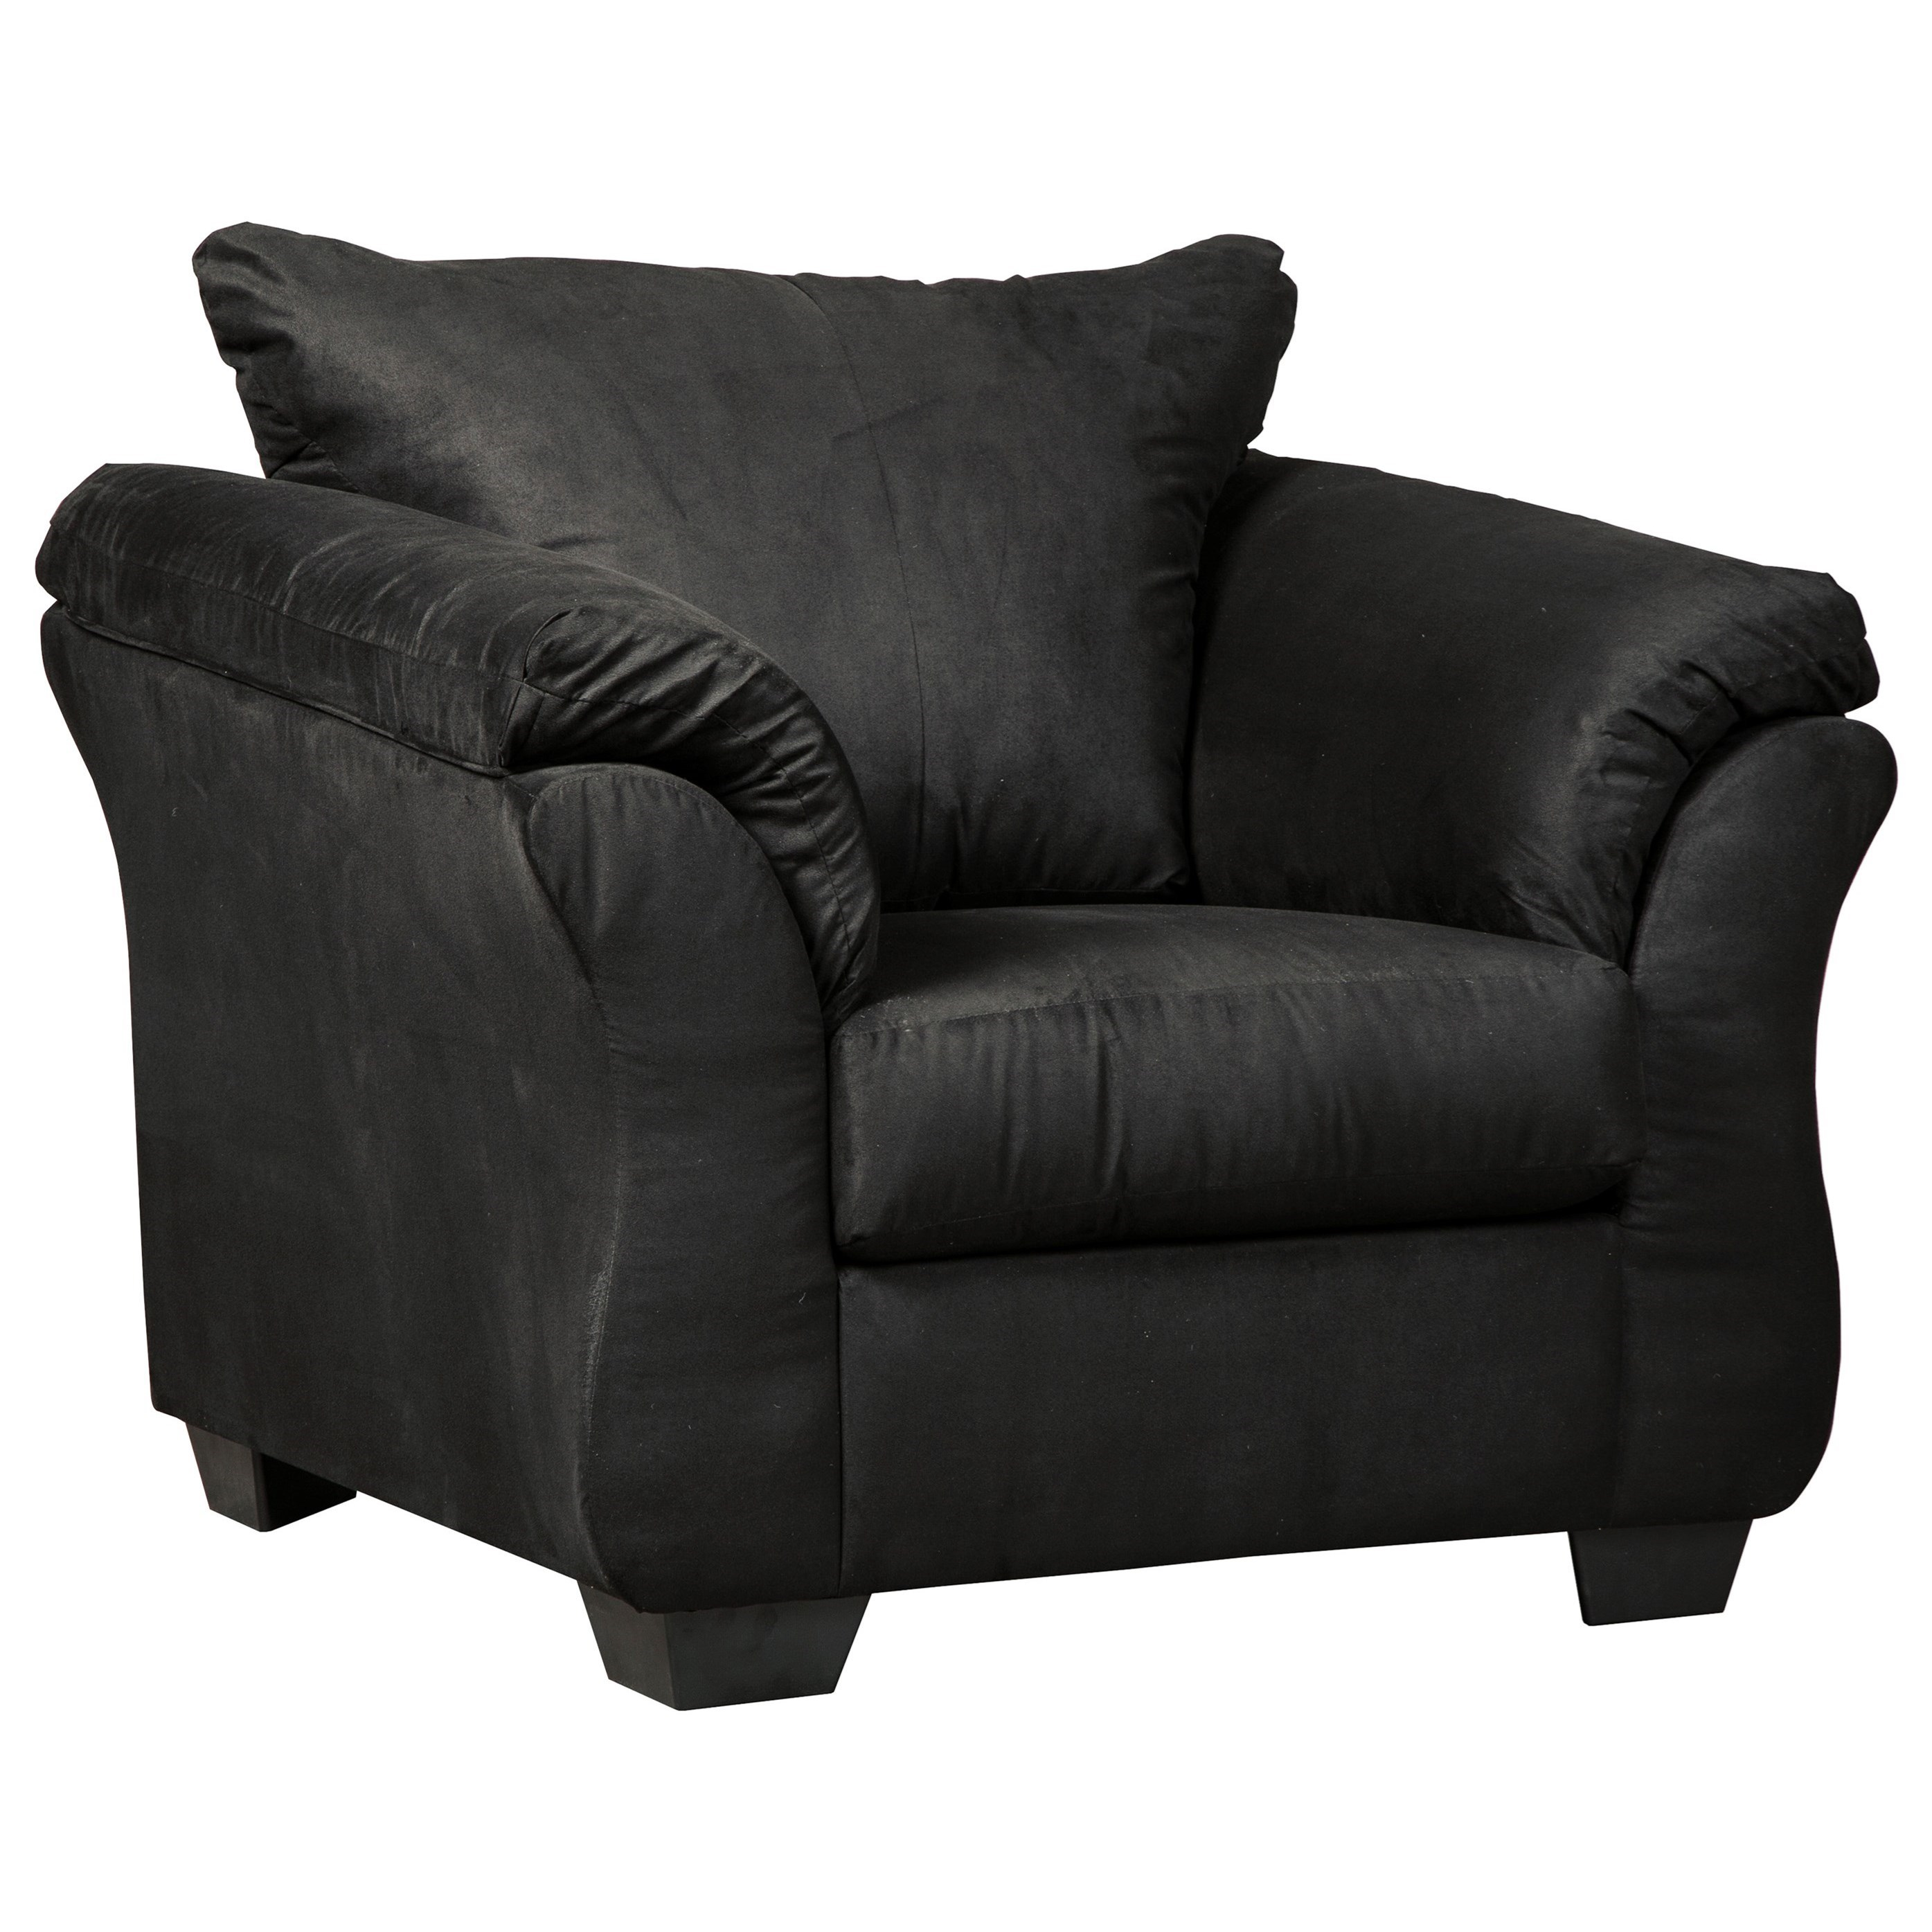 Darcy - Black Upholstered Chair by Ashley (Signature Design) at Johnny Janosik